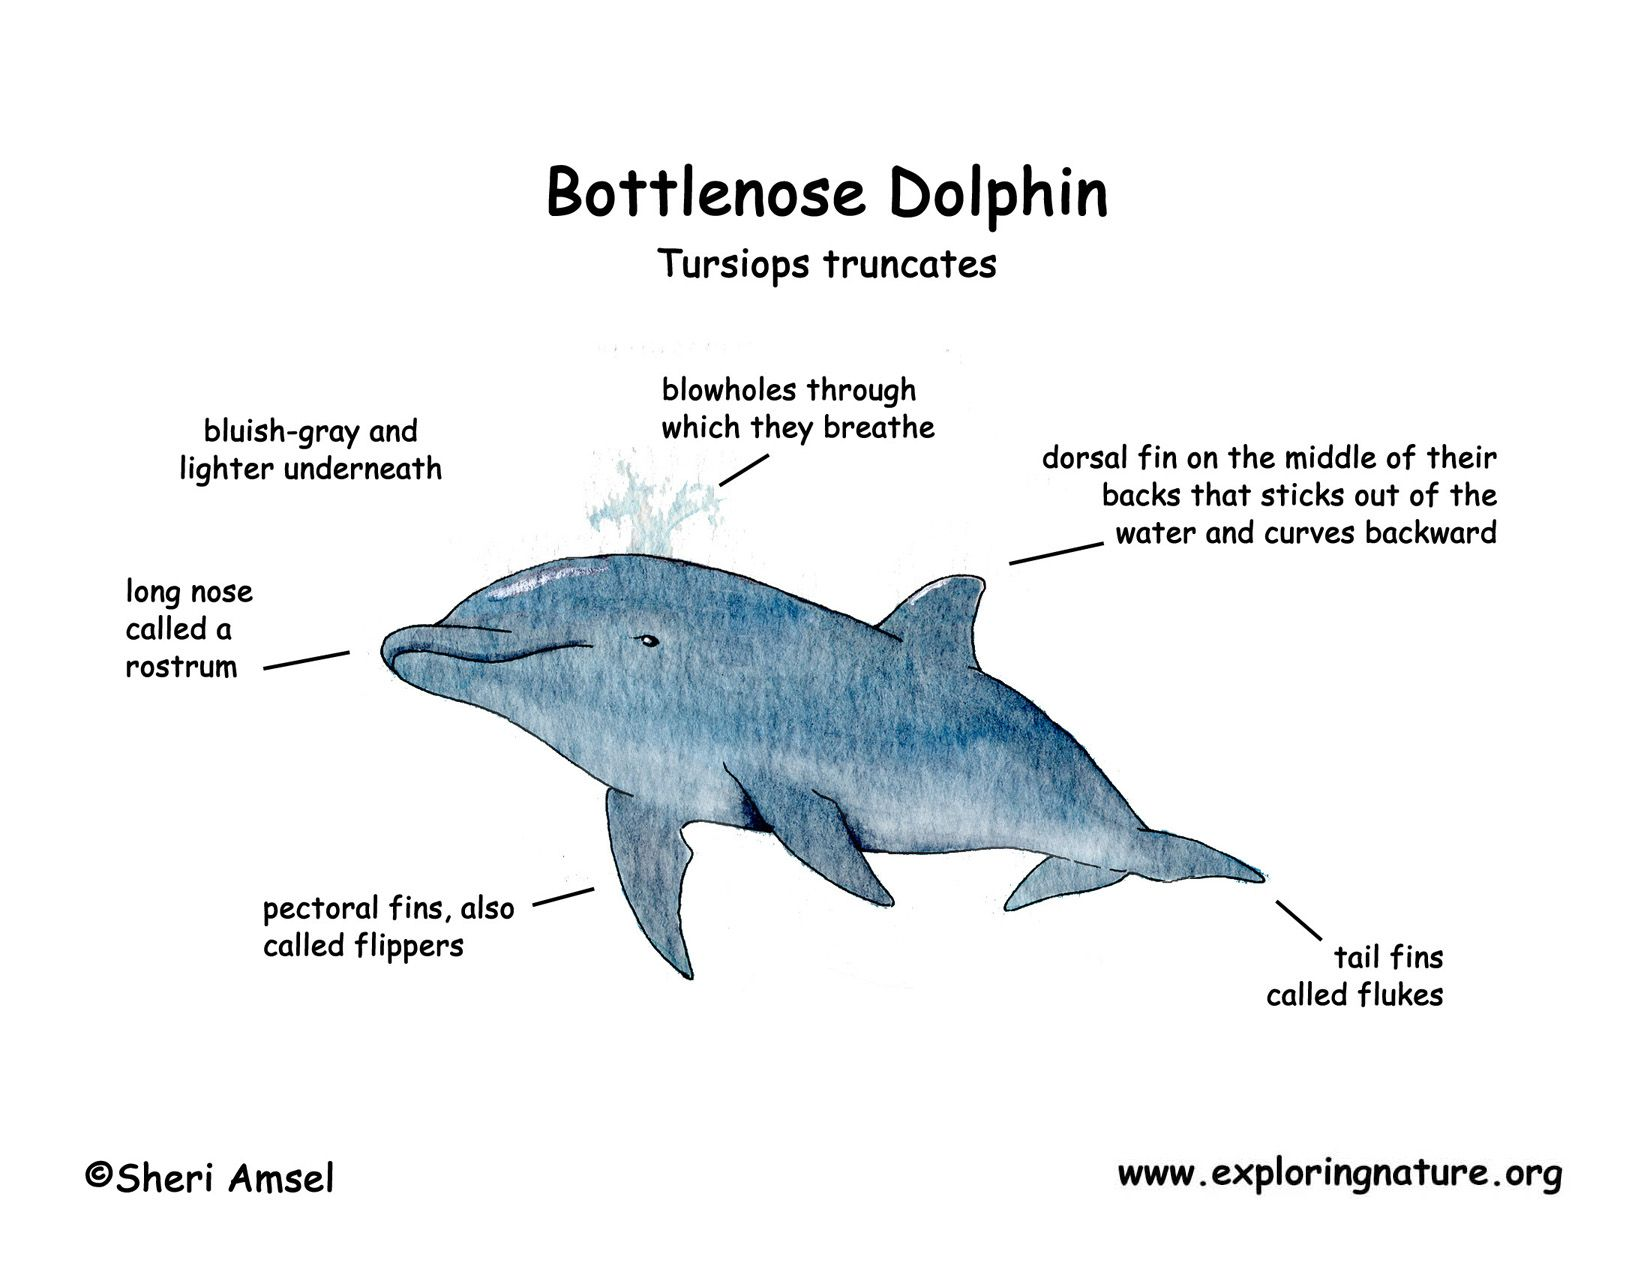 Dolphin life cycle diagram things i love to see pinterest dolphin life cycle diagram pooptronica Choice Image